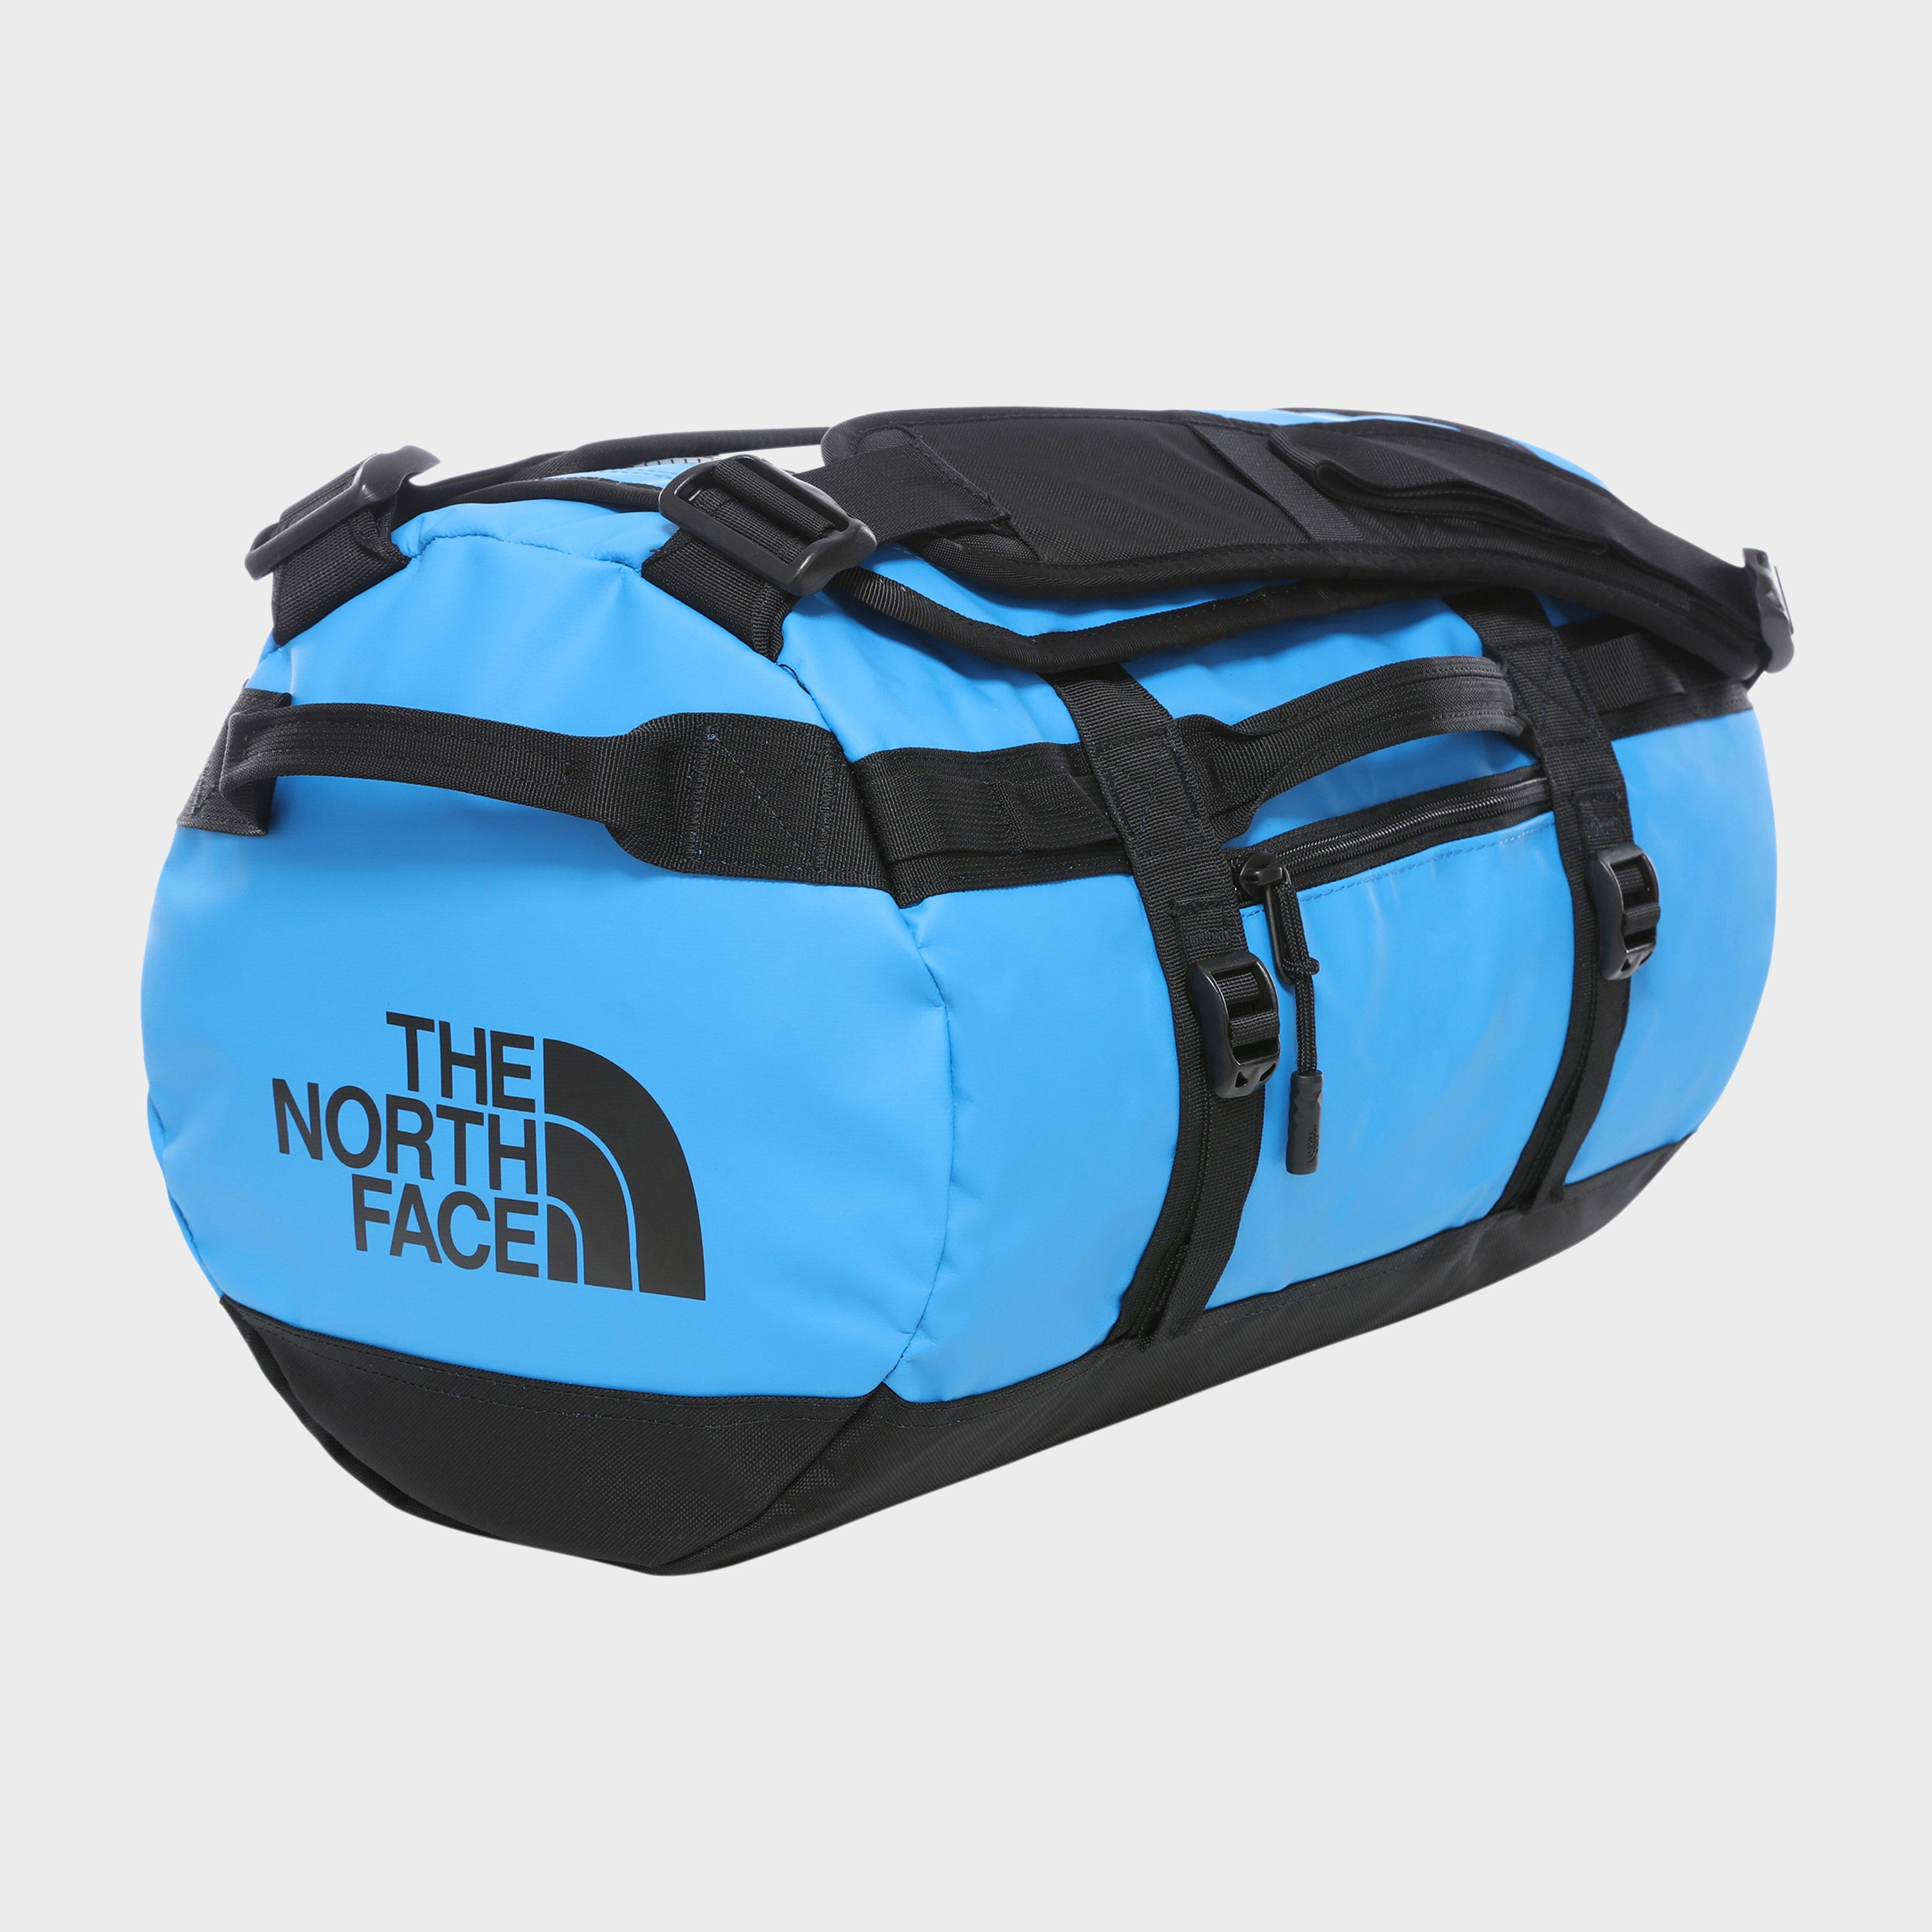 The North Face Basecamp Duffel Bag (Extra Small) - Blue/Blu, Blue